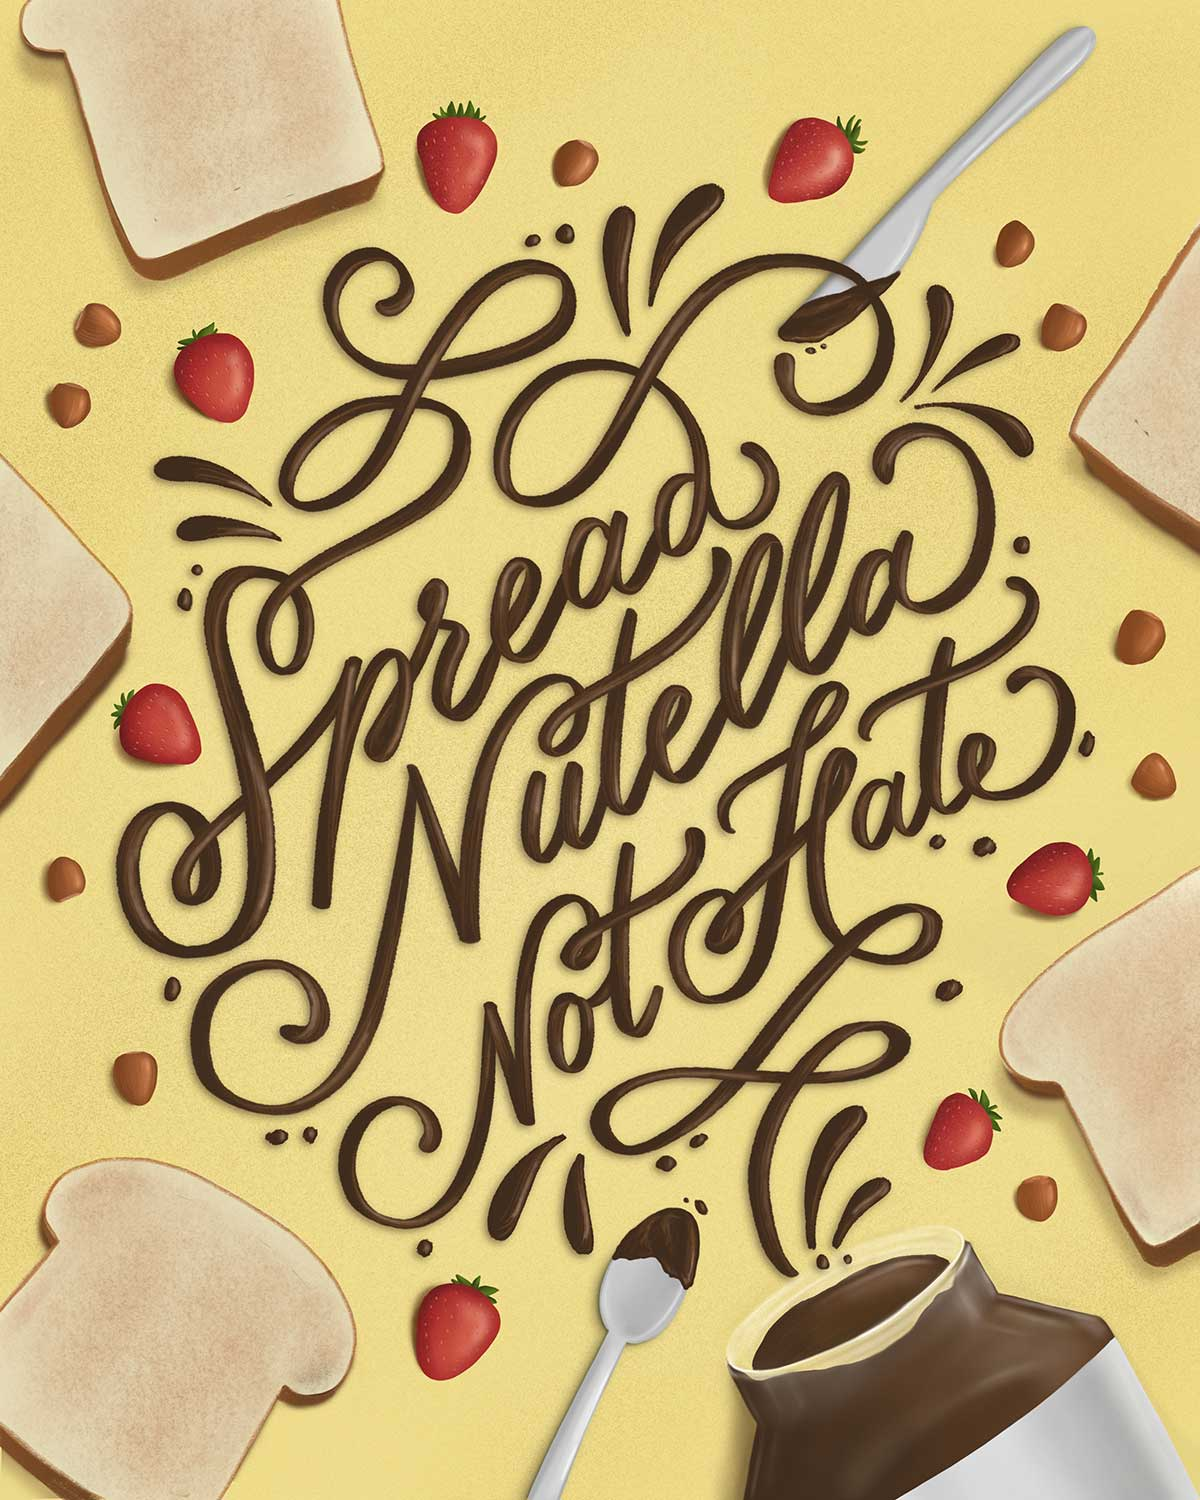 spread-nutella-not-hate-hand-lettering